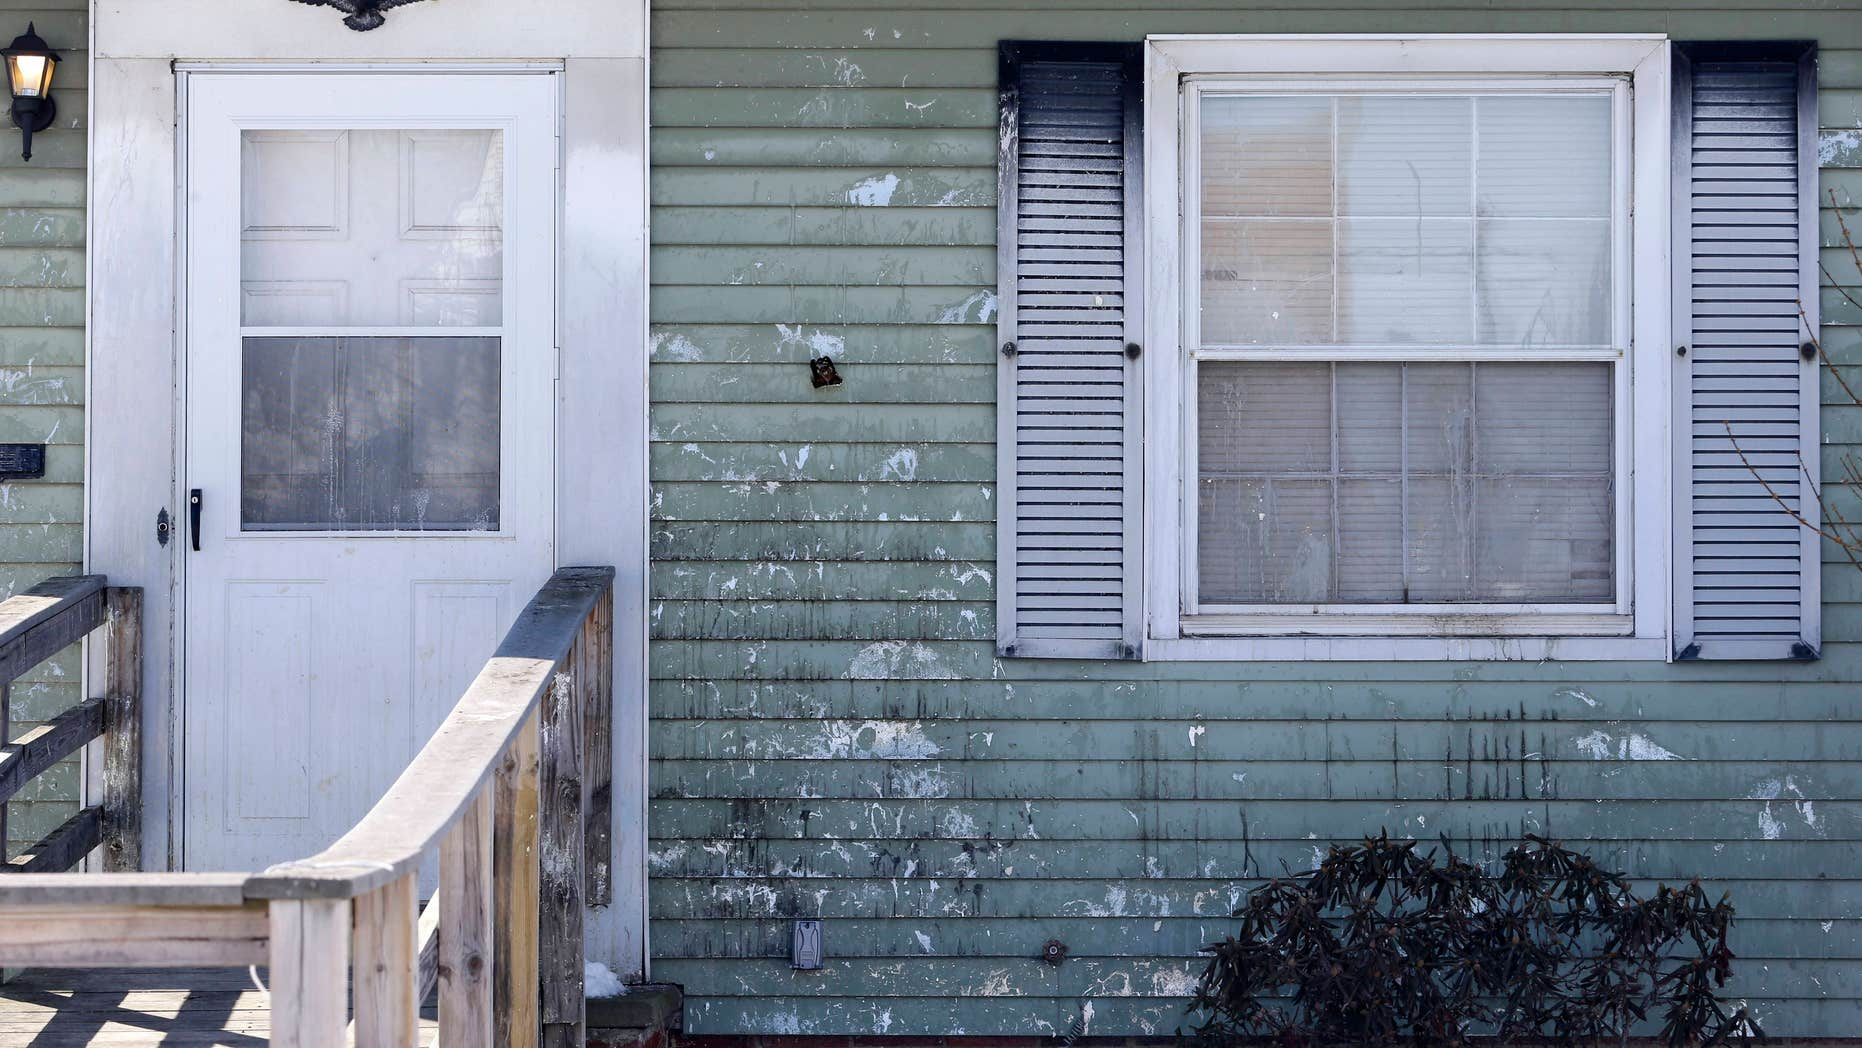 March 6, 2015: A home that has been pelted with eggs several times a week for a year is shown.